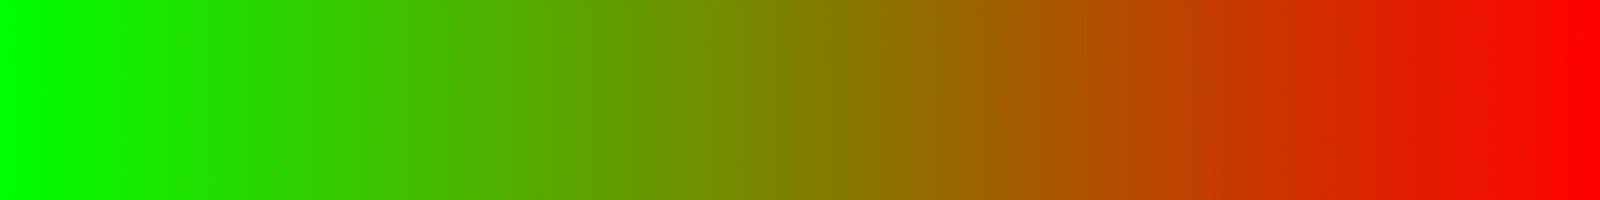 Color_gradient_illustrating_a_sorites_paradox.png